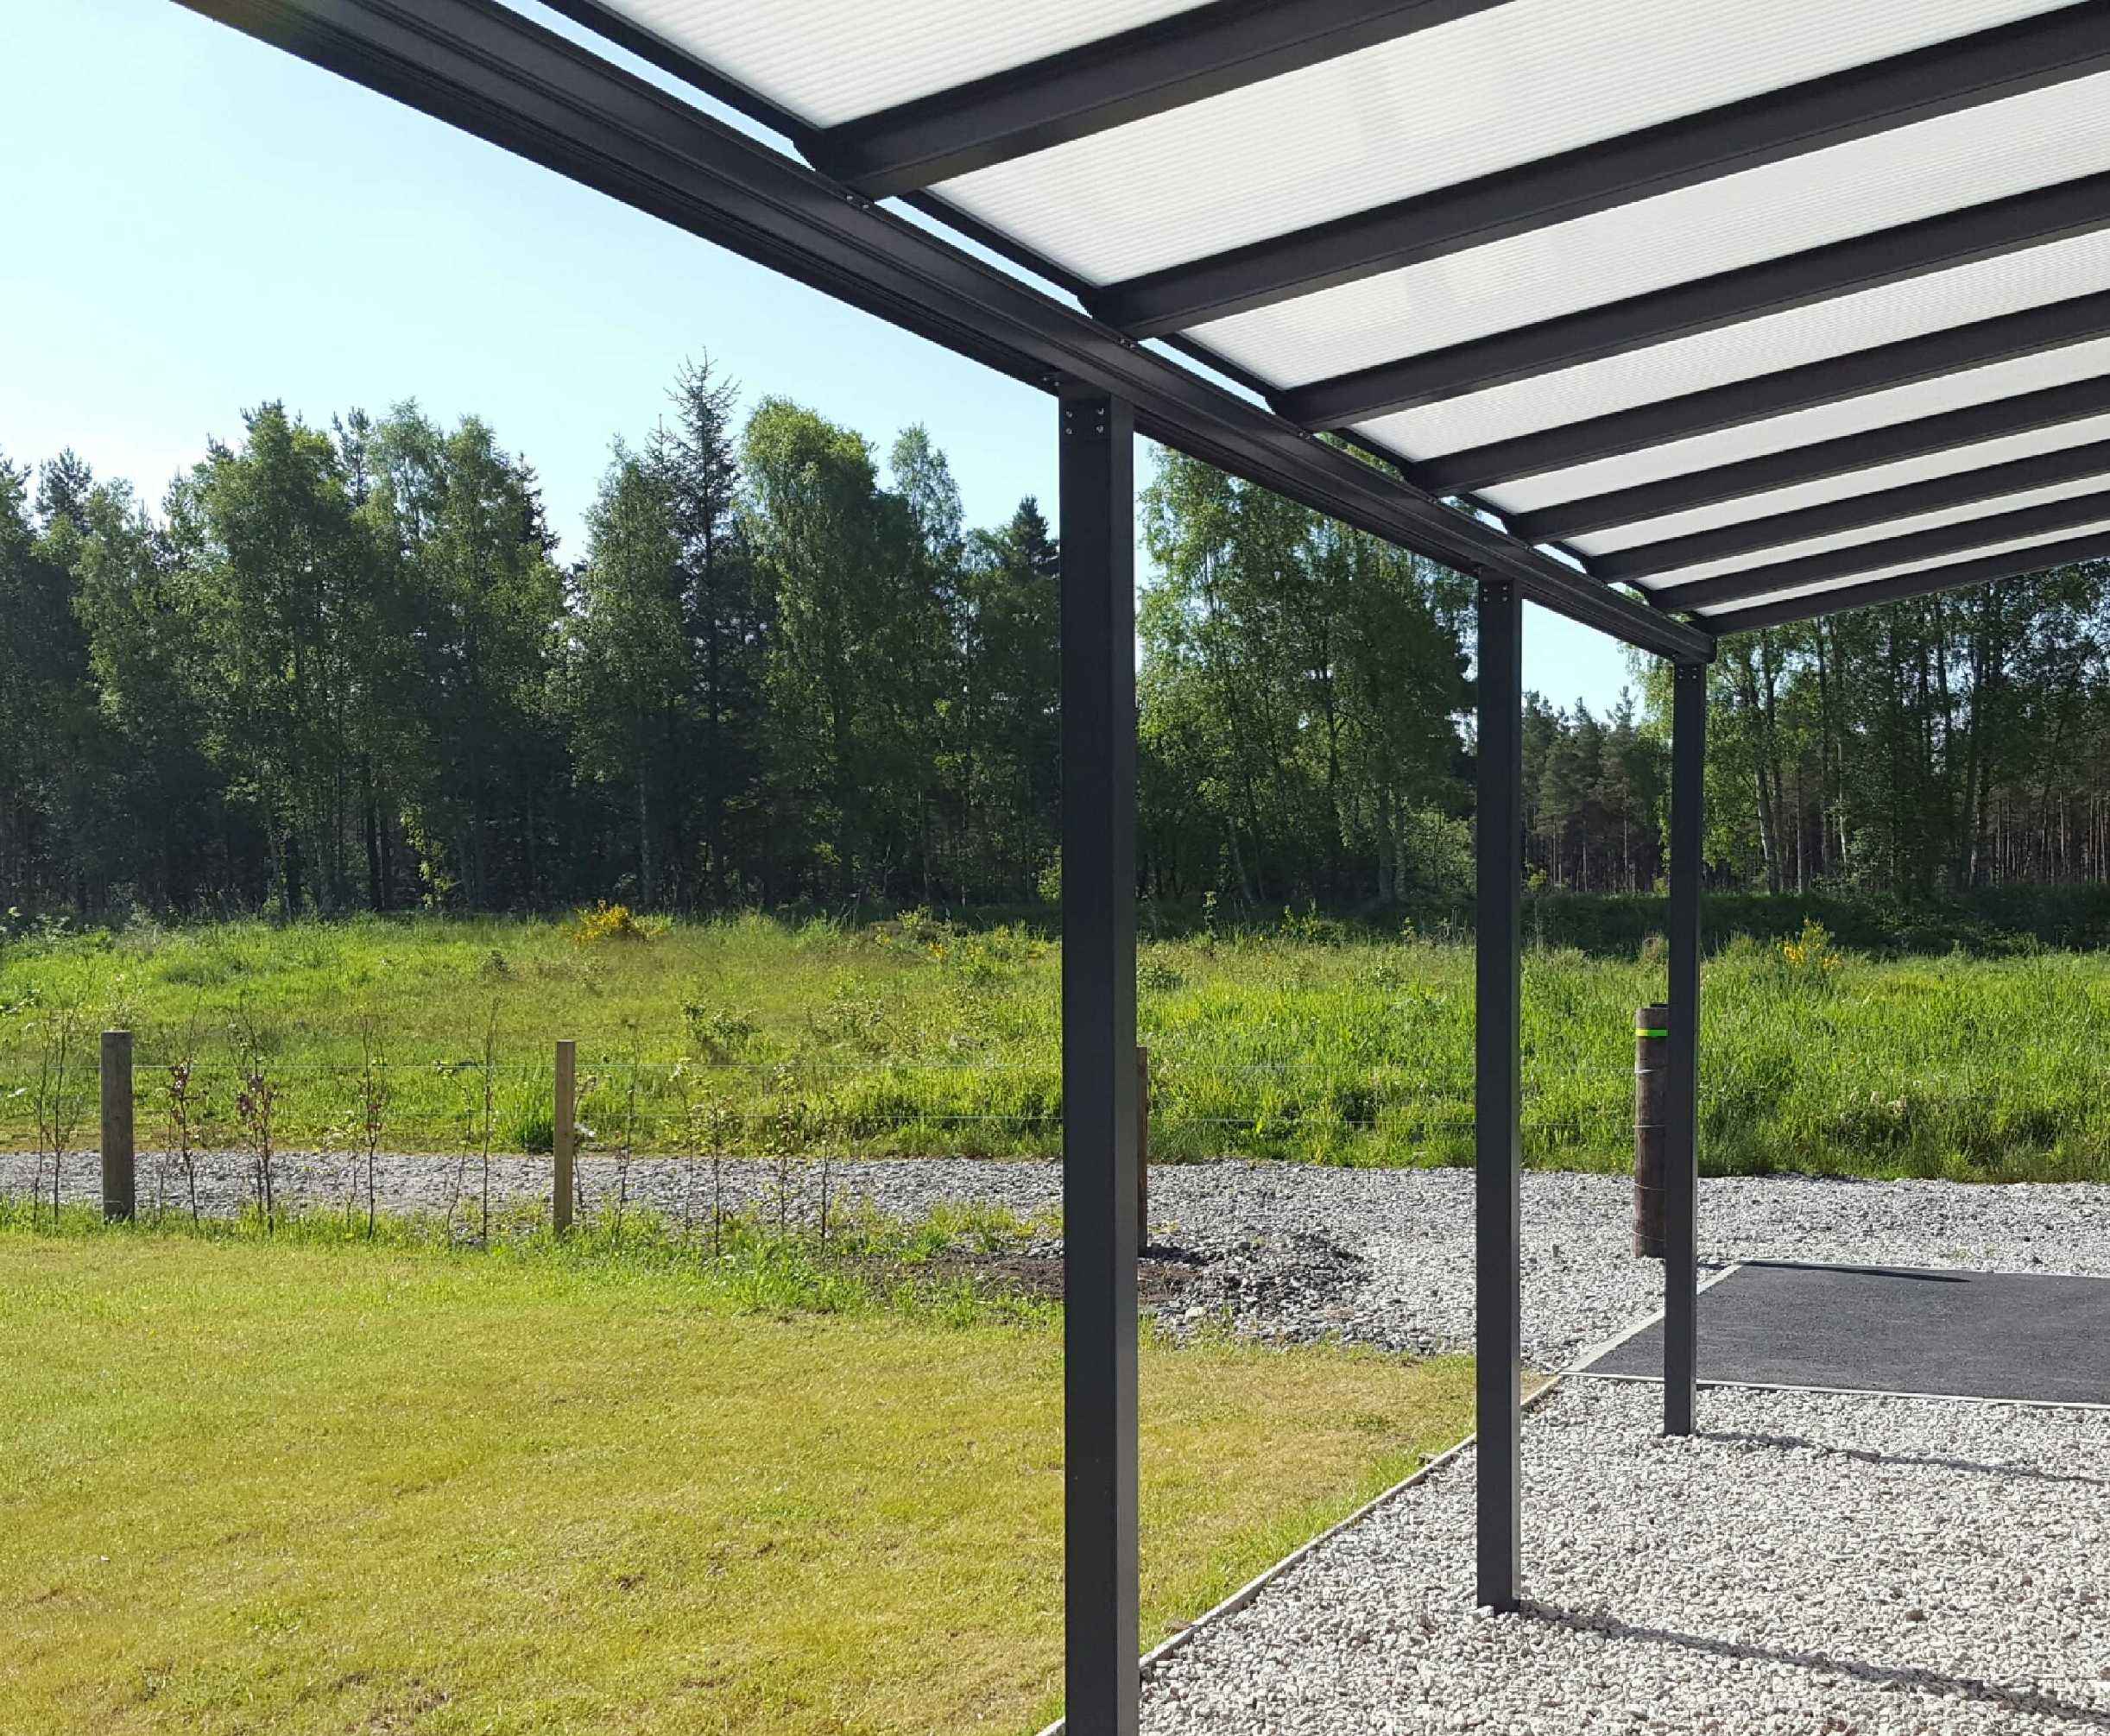 Omega Smart Lean-To Canopy, Anthracite Grey, UNGLAZED for 6mm Glazing - 4.9m (W) x 3.0m (P), (3) Supporting Posts